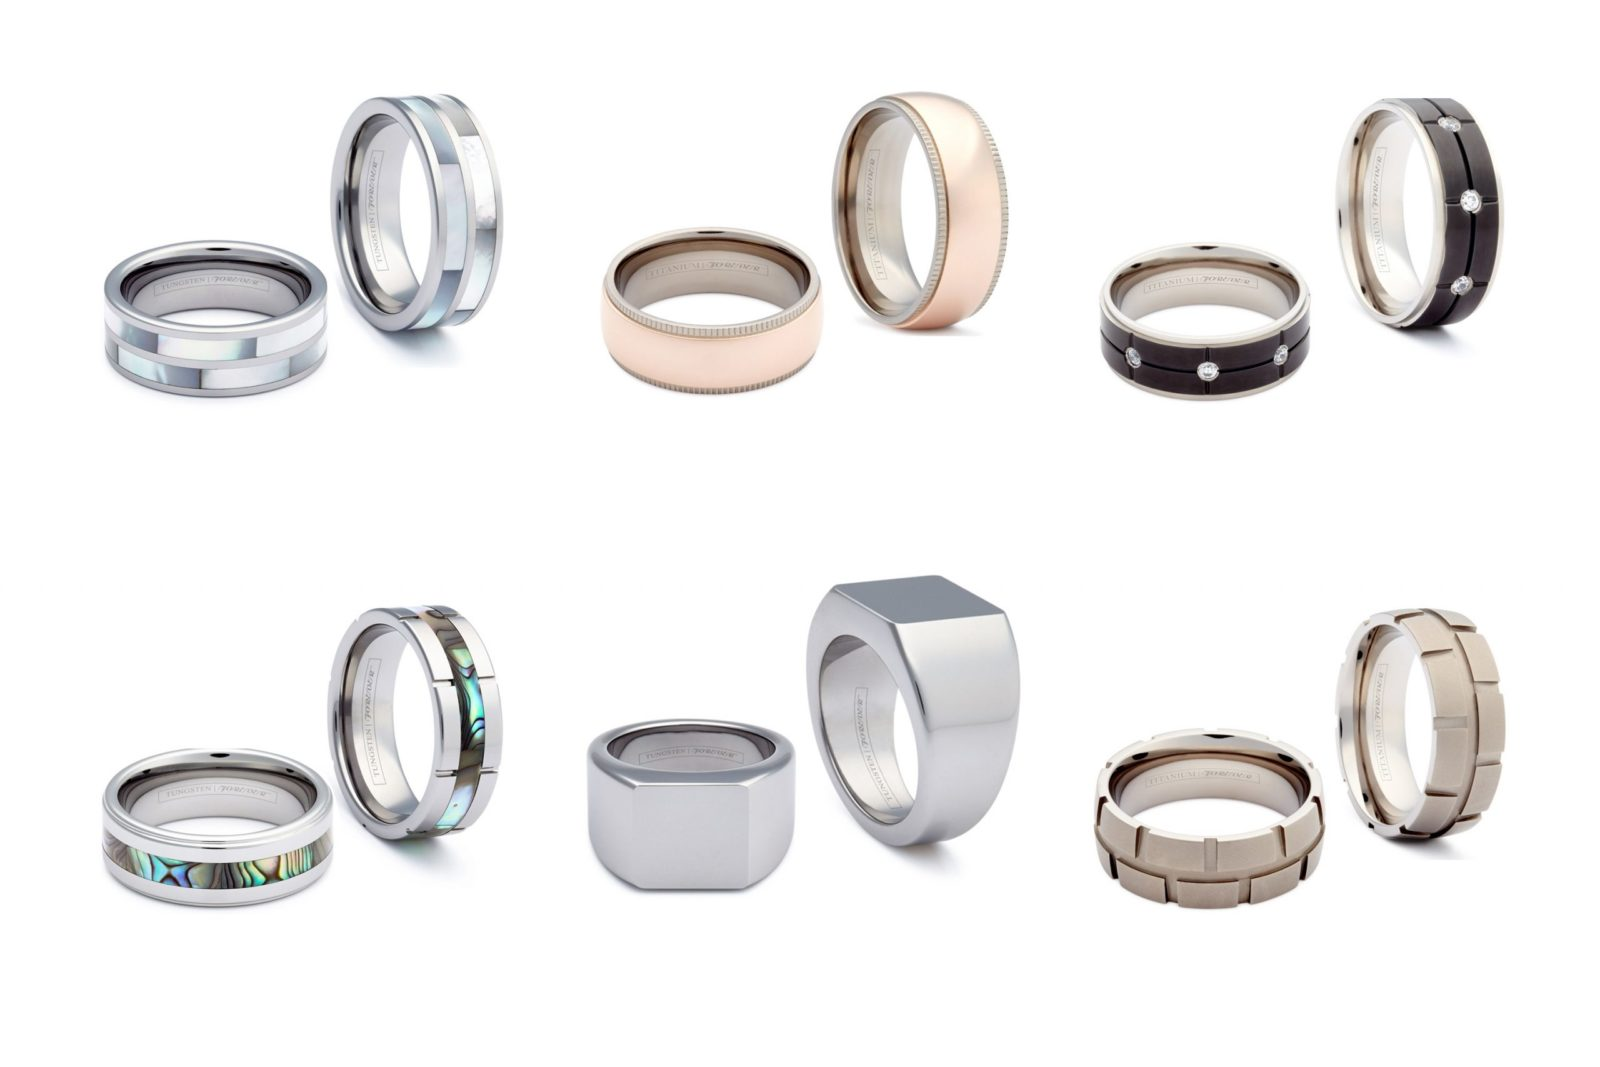 Mens-Wedding-Ring-Jewelry-Photography-Los-Angeles-CA